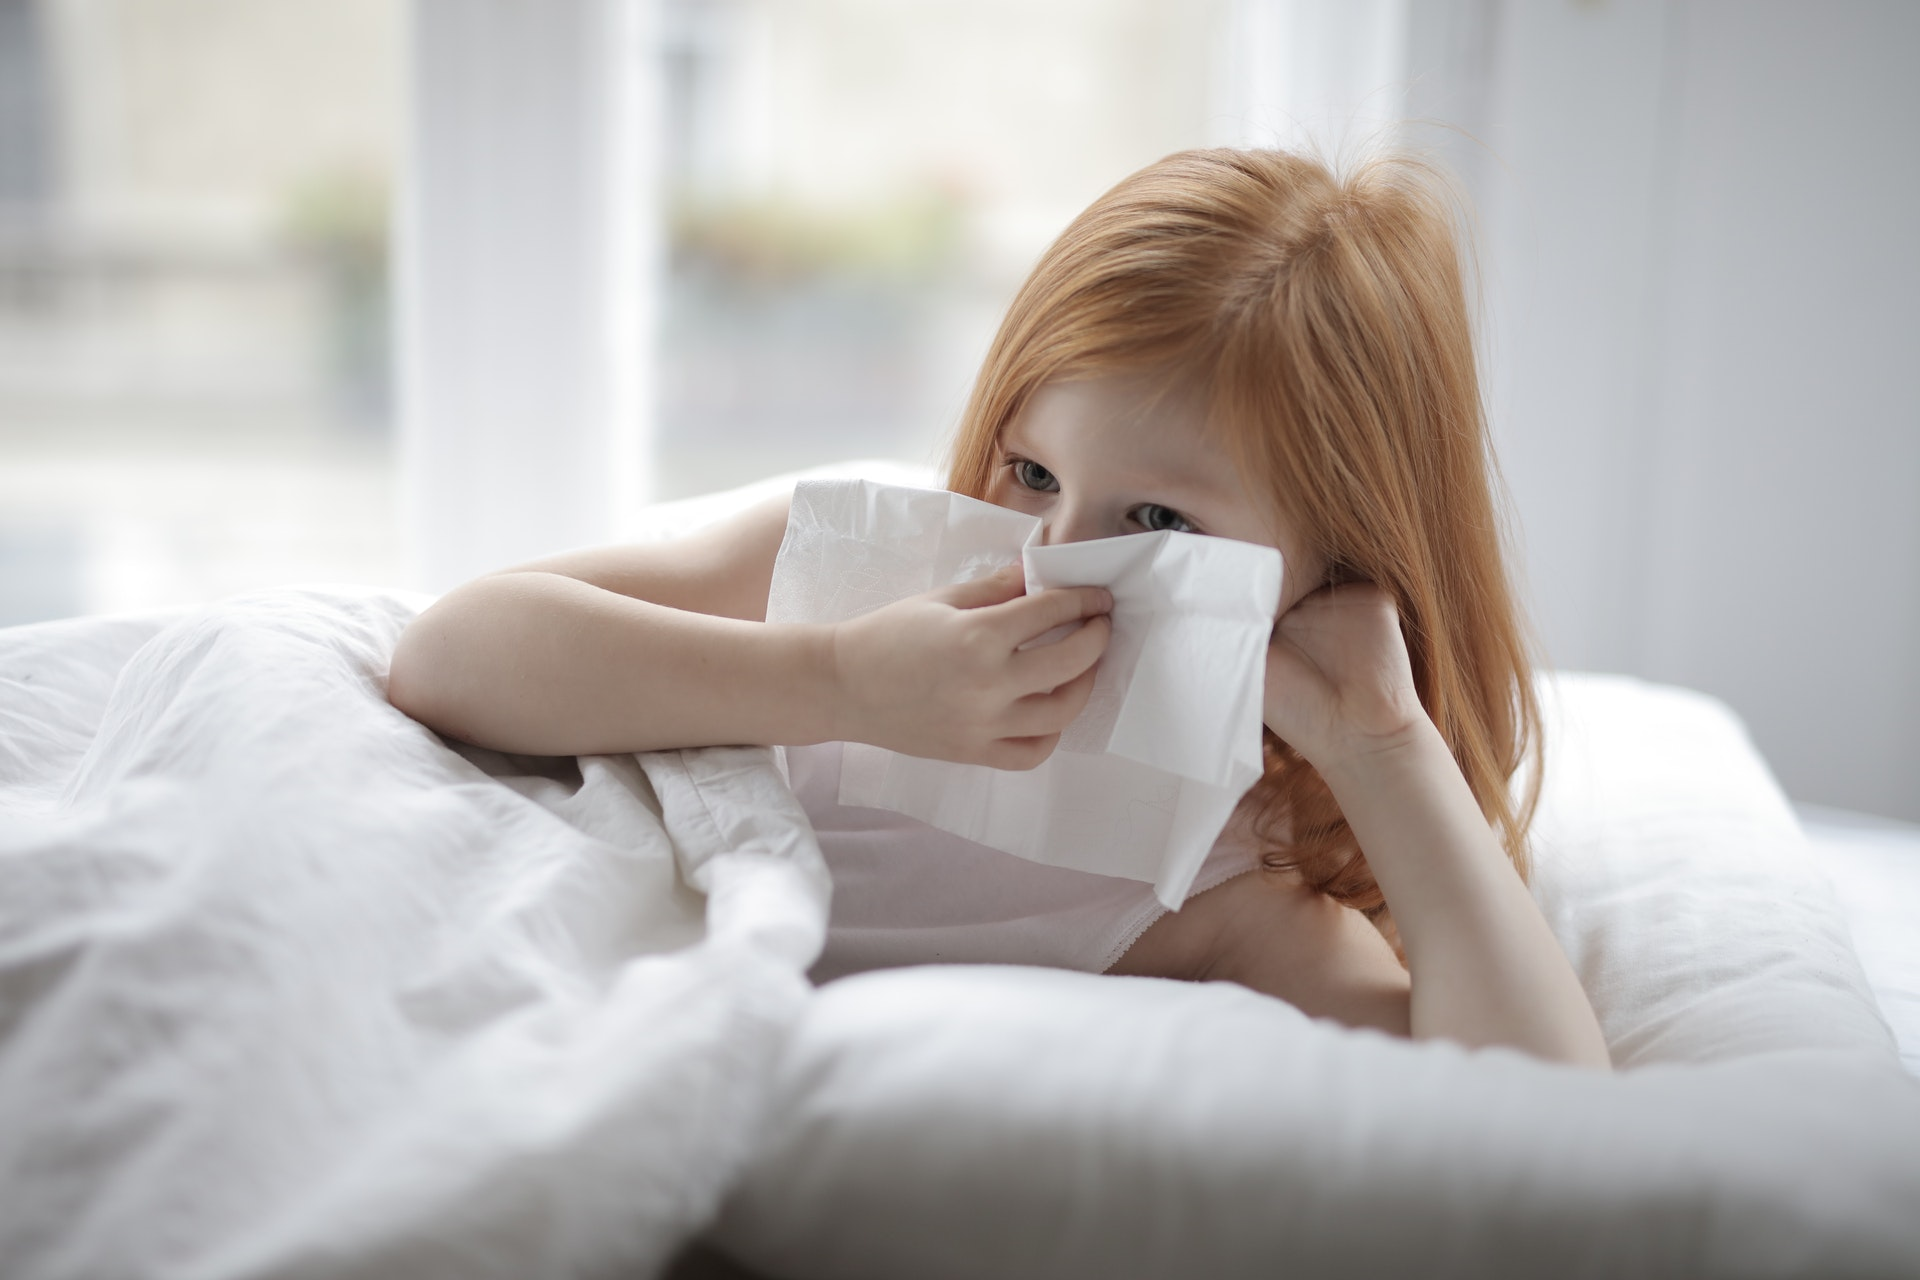 Young, red-headed girl blowing nose while in bed.